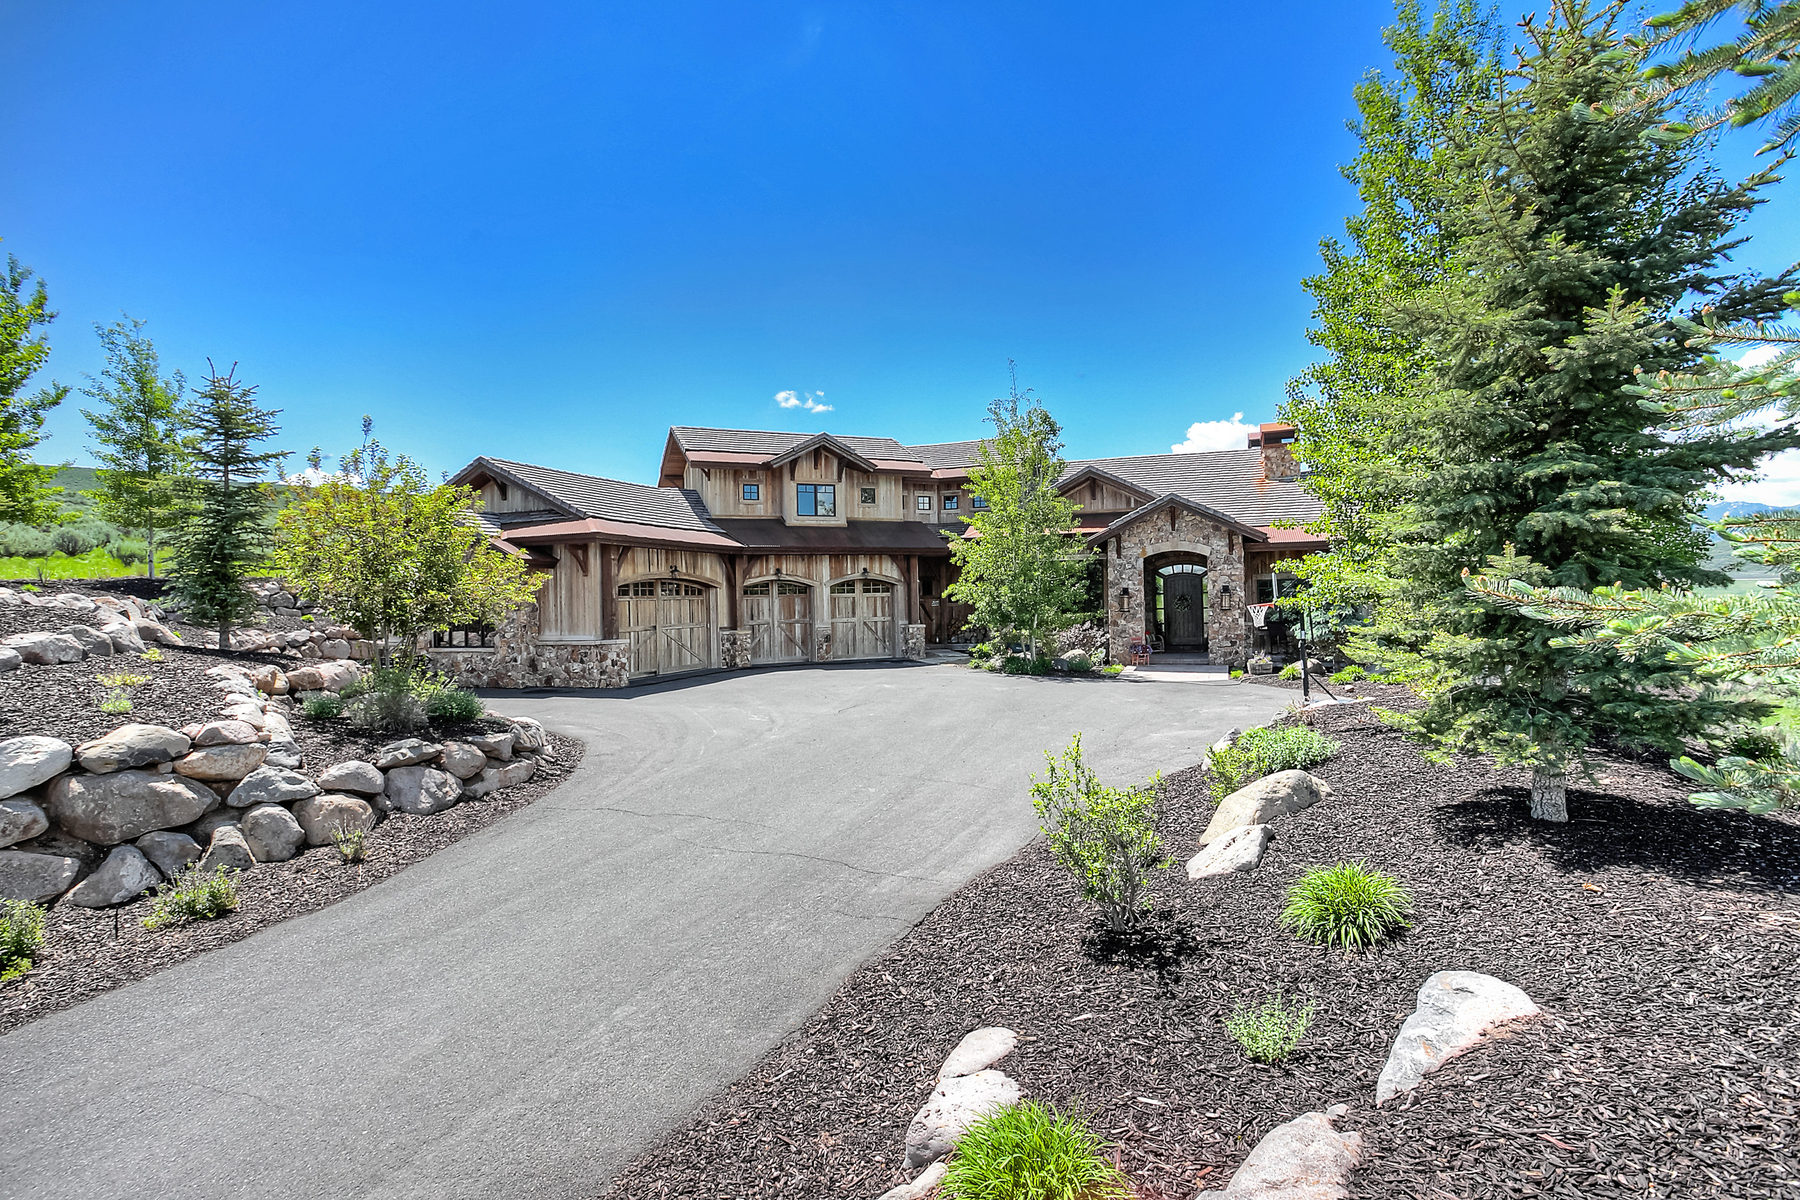 Maison unifamiliale pour l Vente à Distinctive Mountain Estate 2640 Cody Trail Park City, Utah, 84098 États-Unis